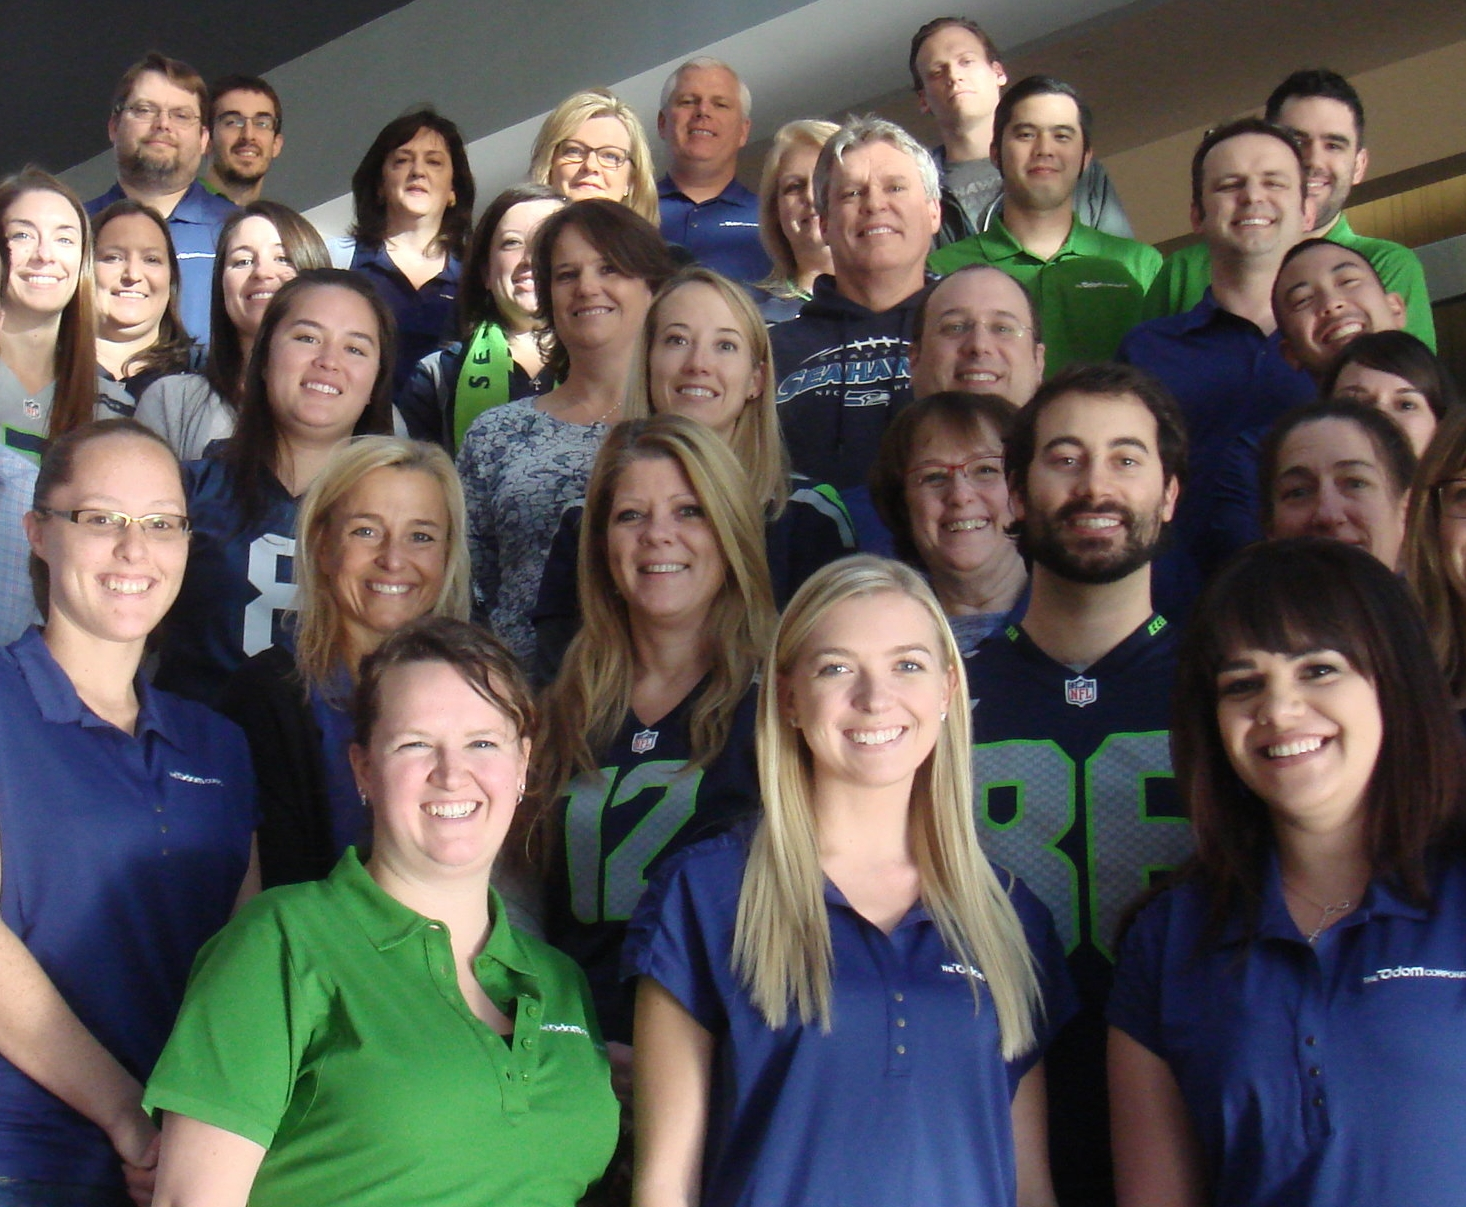 Team members from the corporate office celebrating Blue Friday